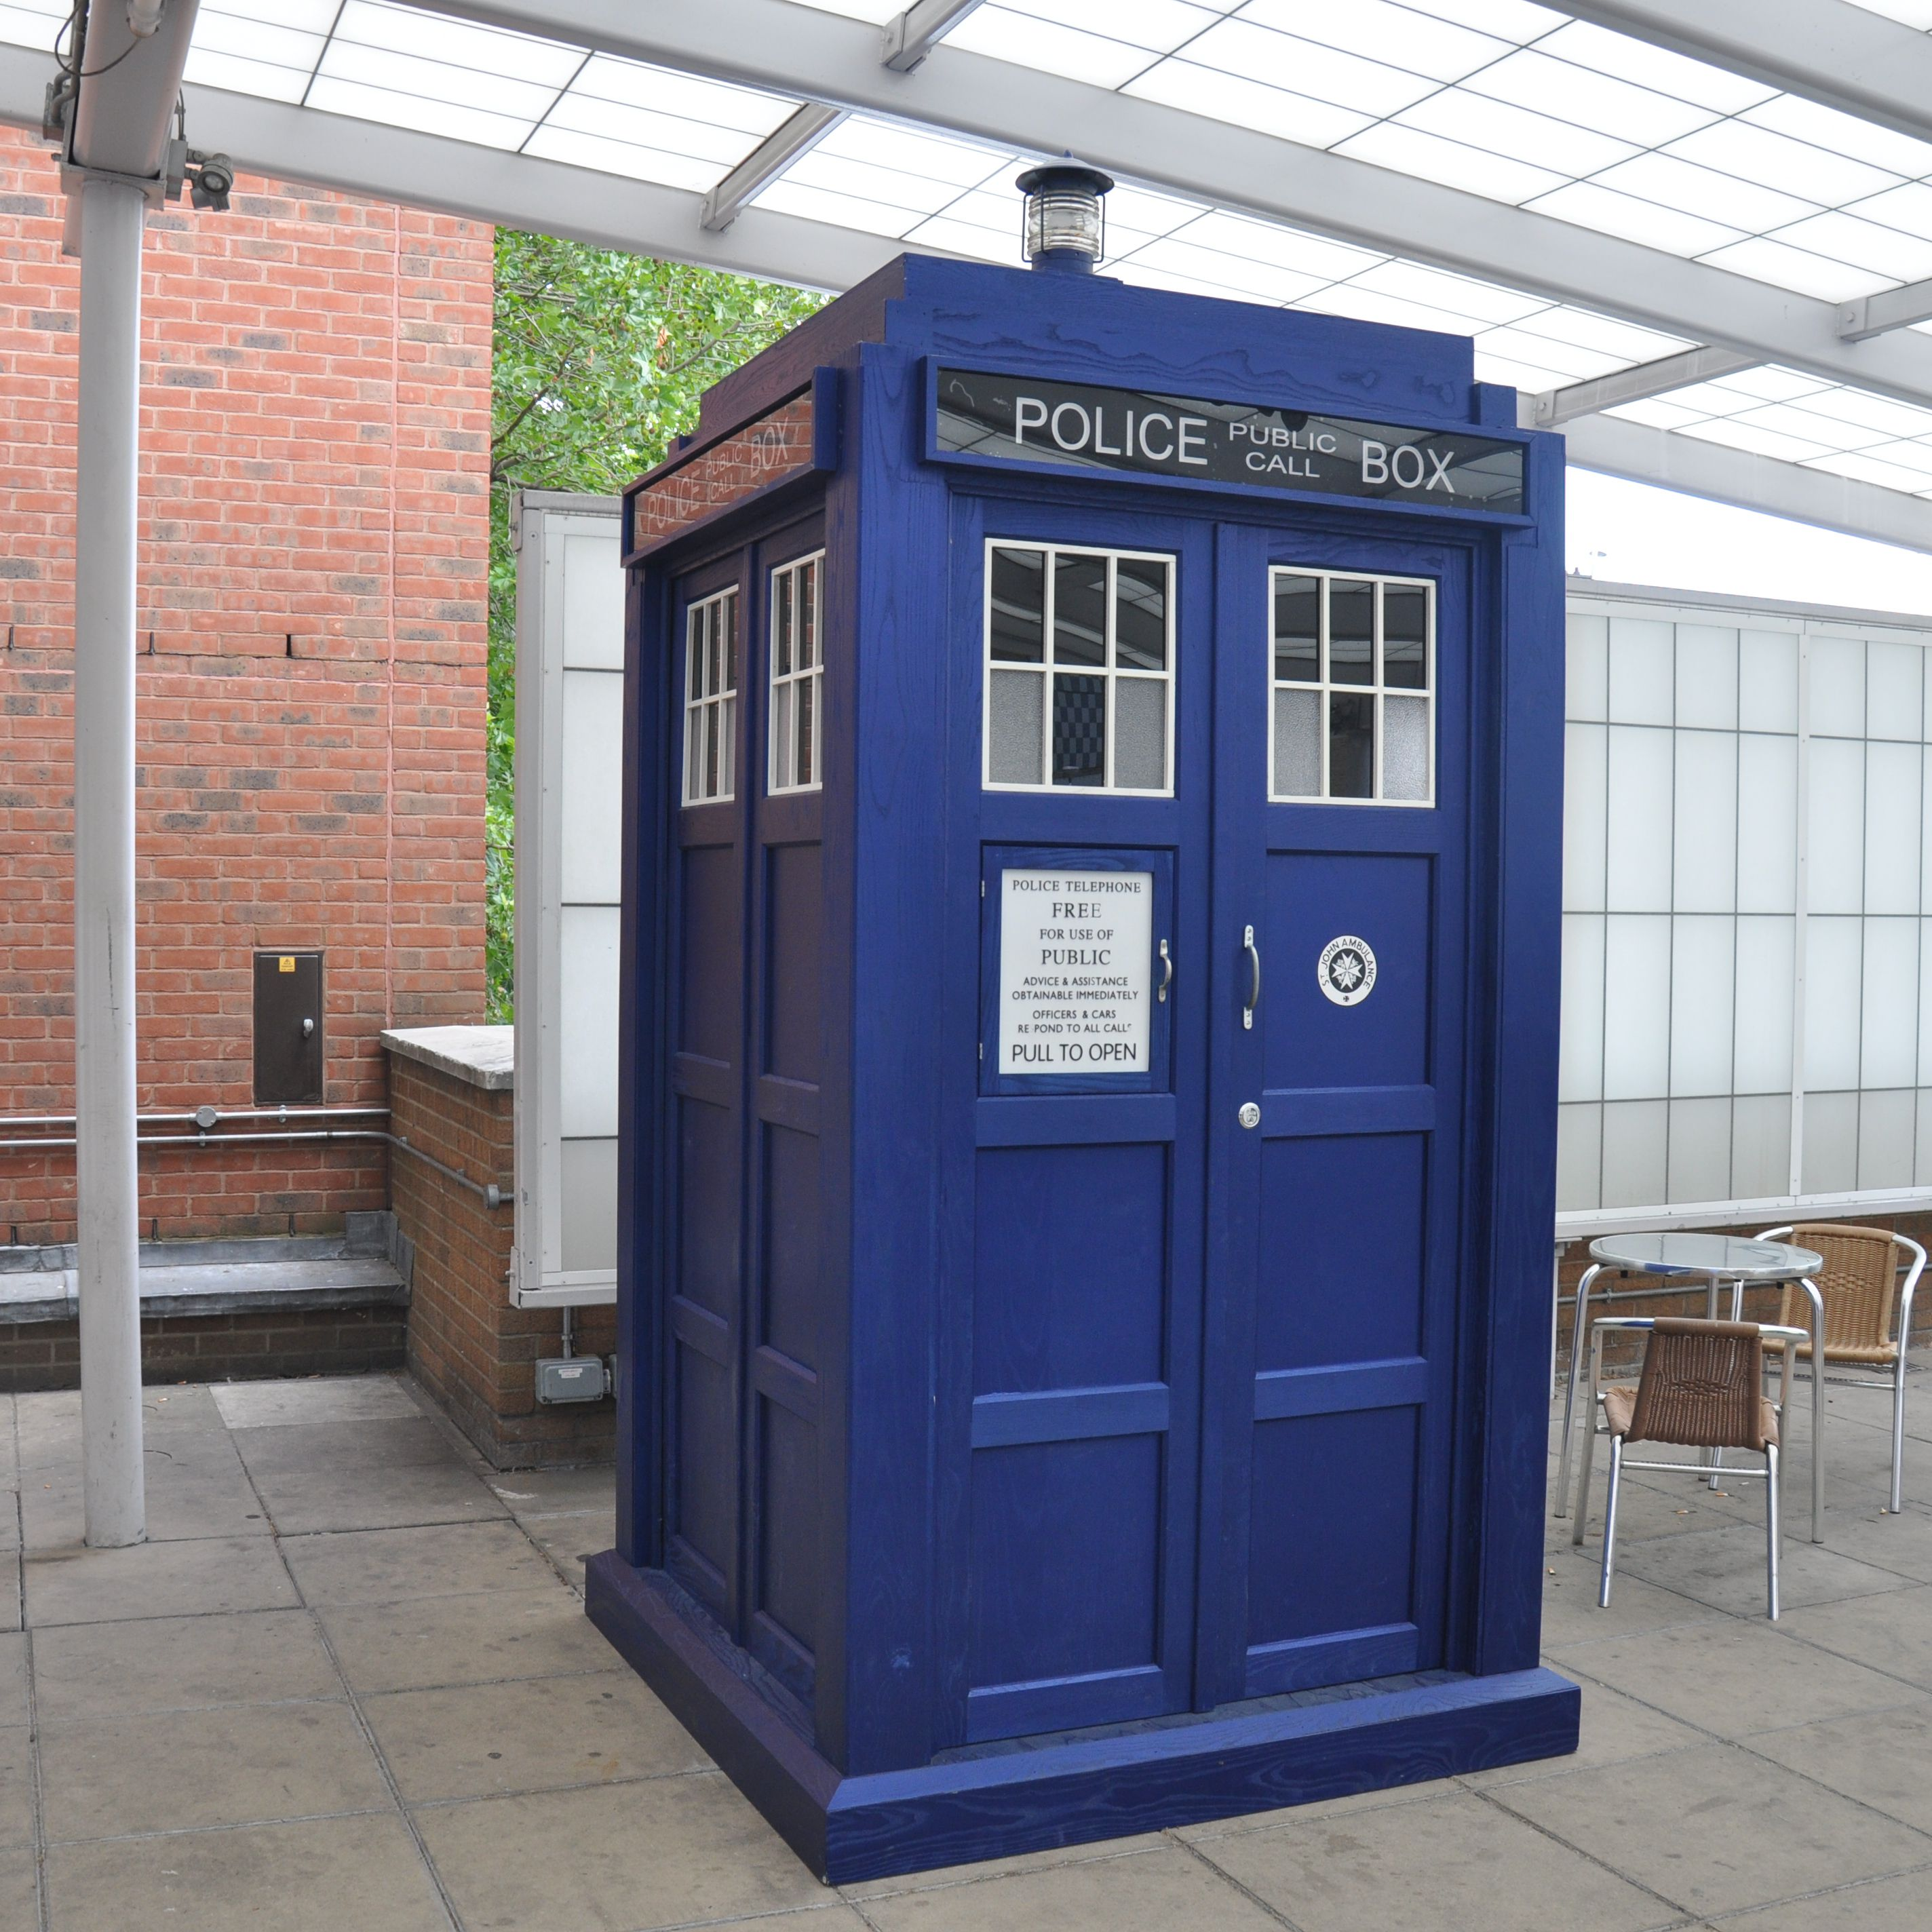 The Doctor Who Shop and Museum in London